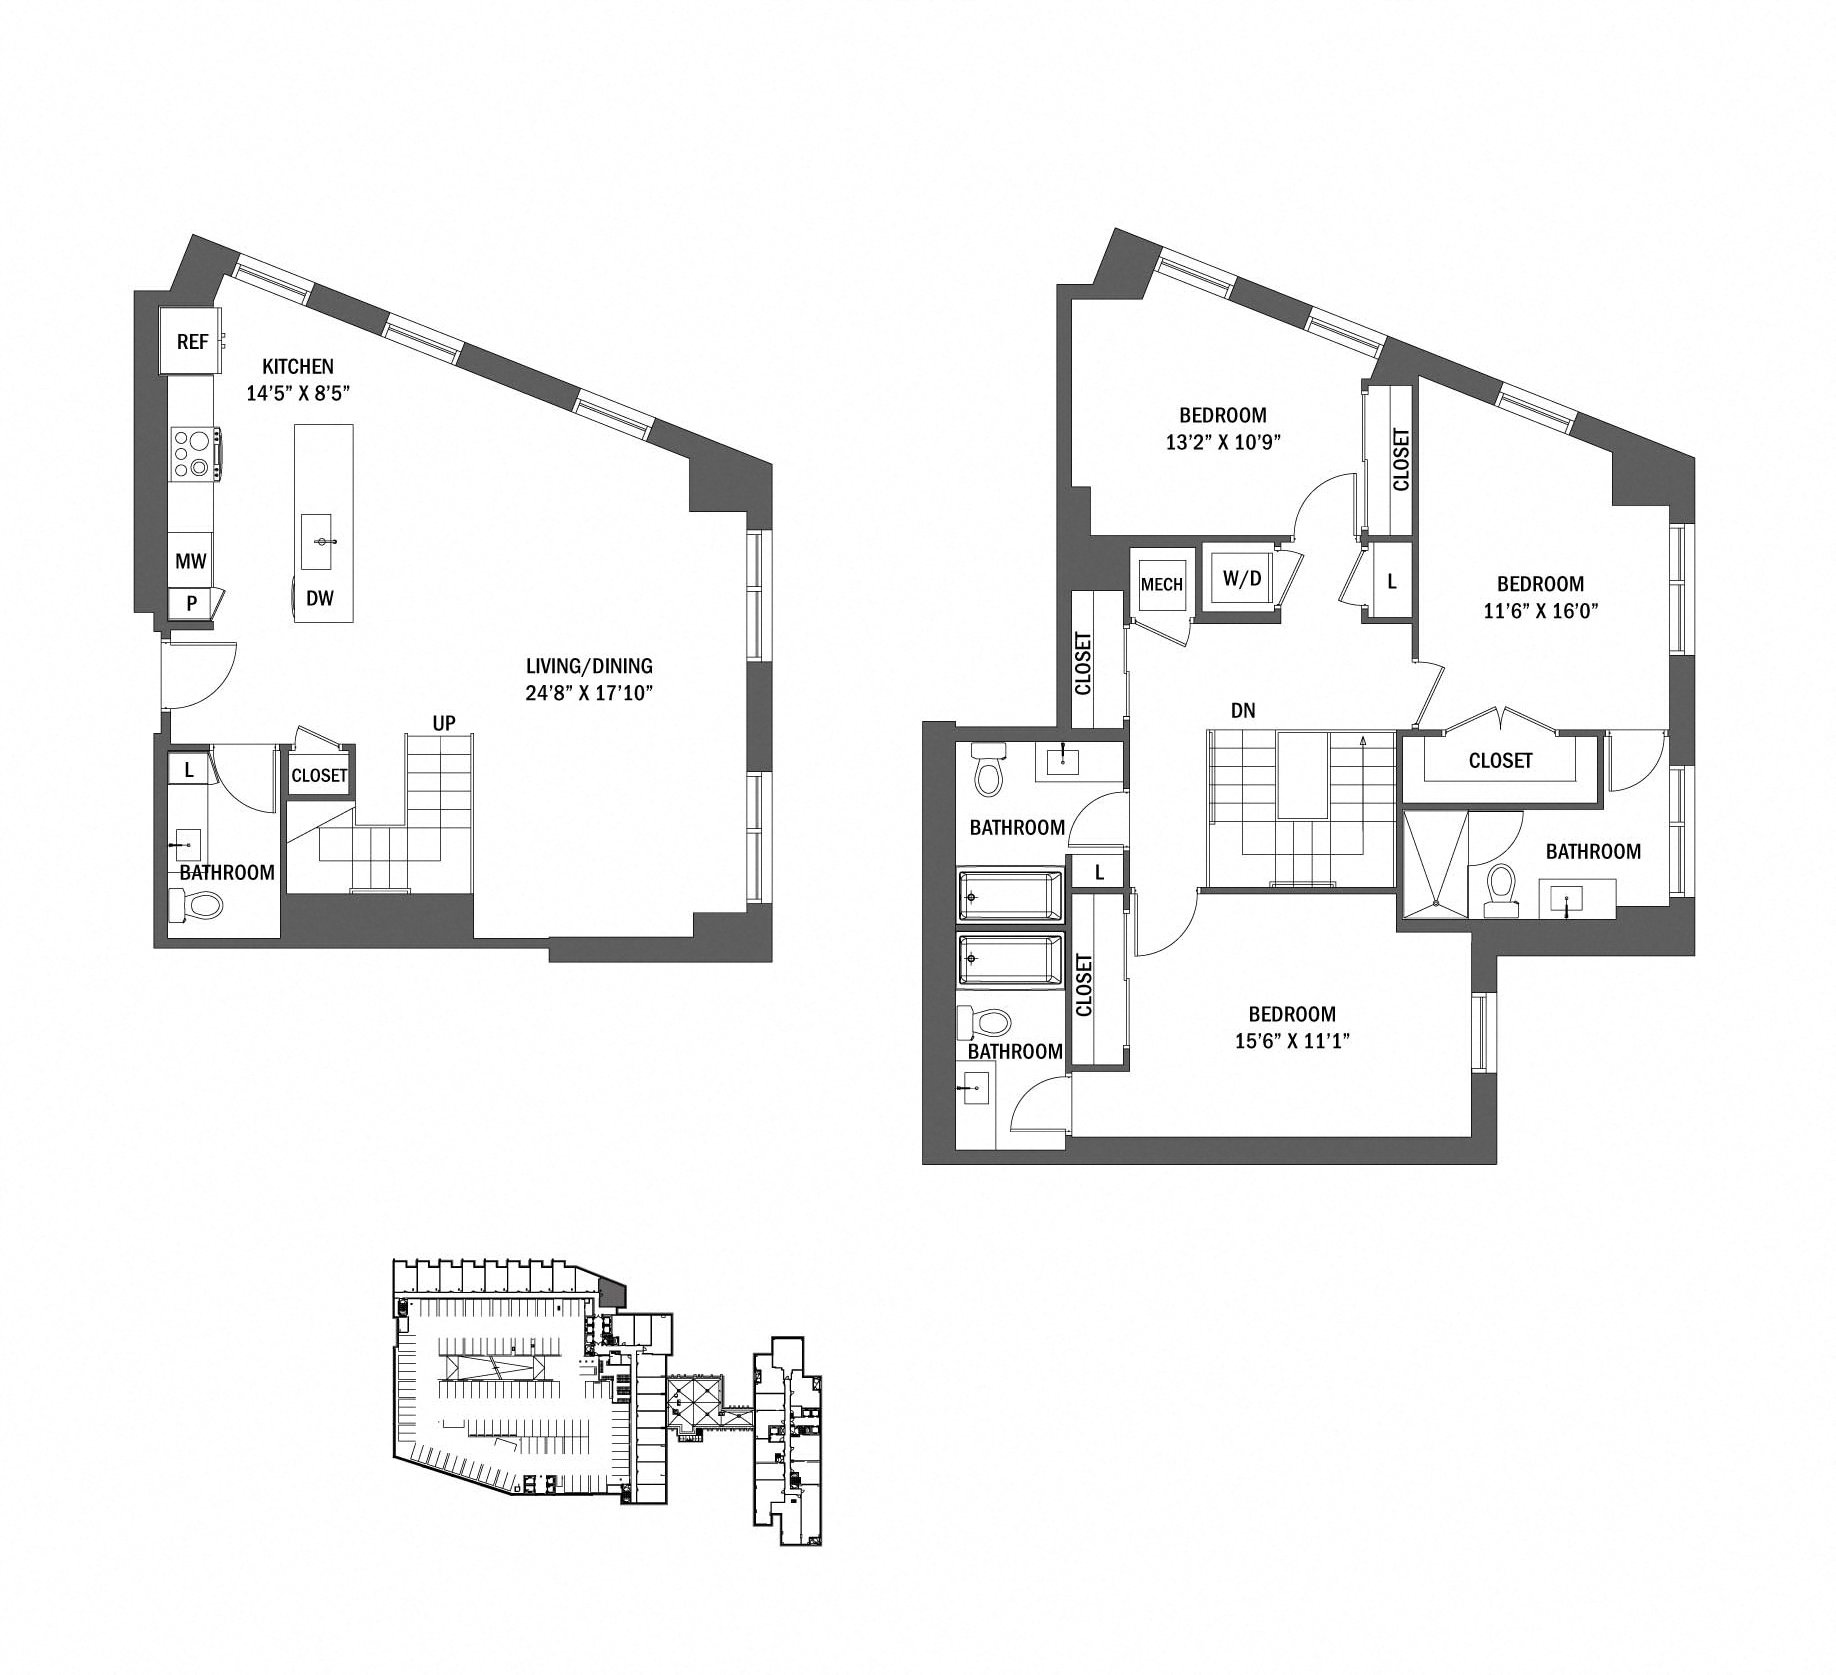 P0625338 n10 mp 2 floorplan